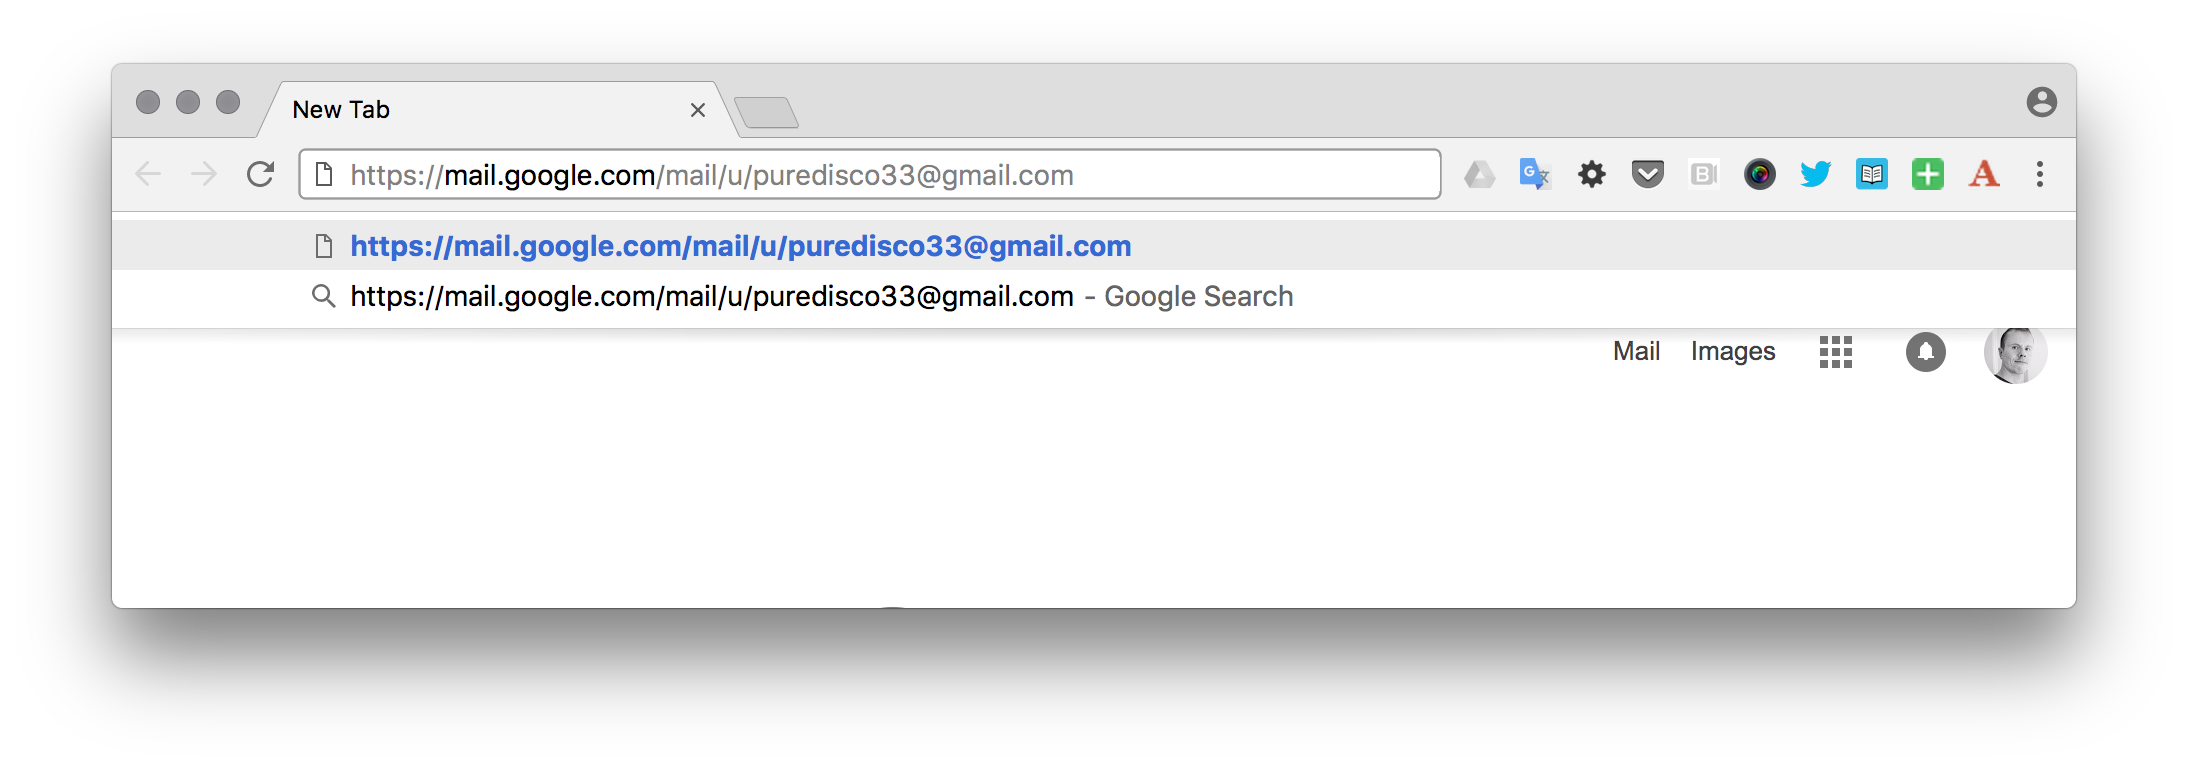 Switching to a different Gmail account